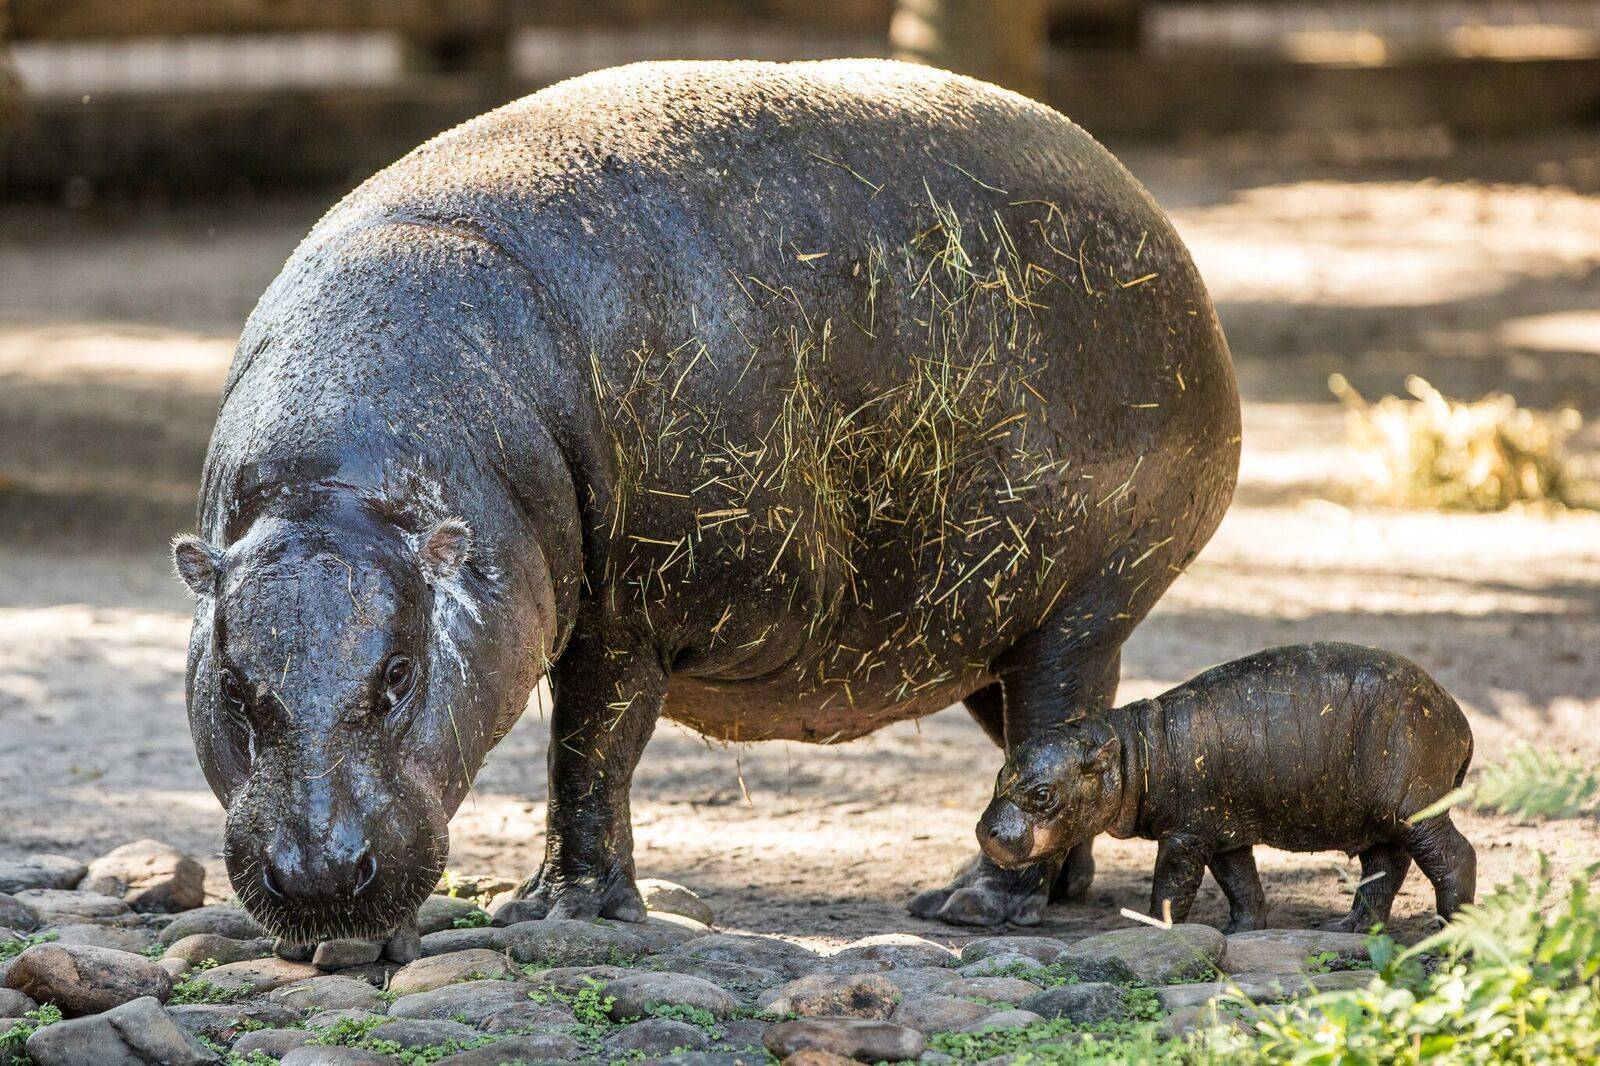 540bf088f65fa54c6d6c_pygmy_hippo_baby_HiRes_34_preview.jpeg